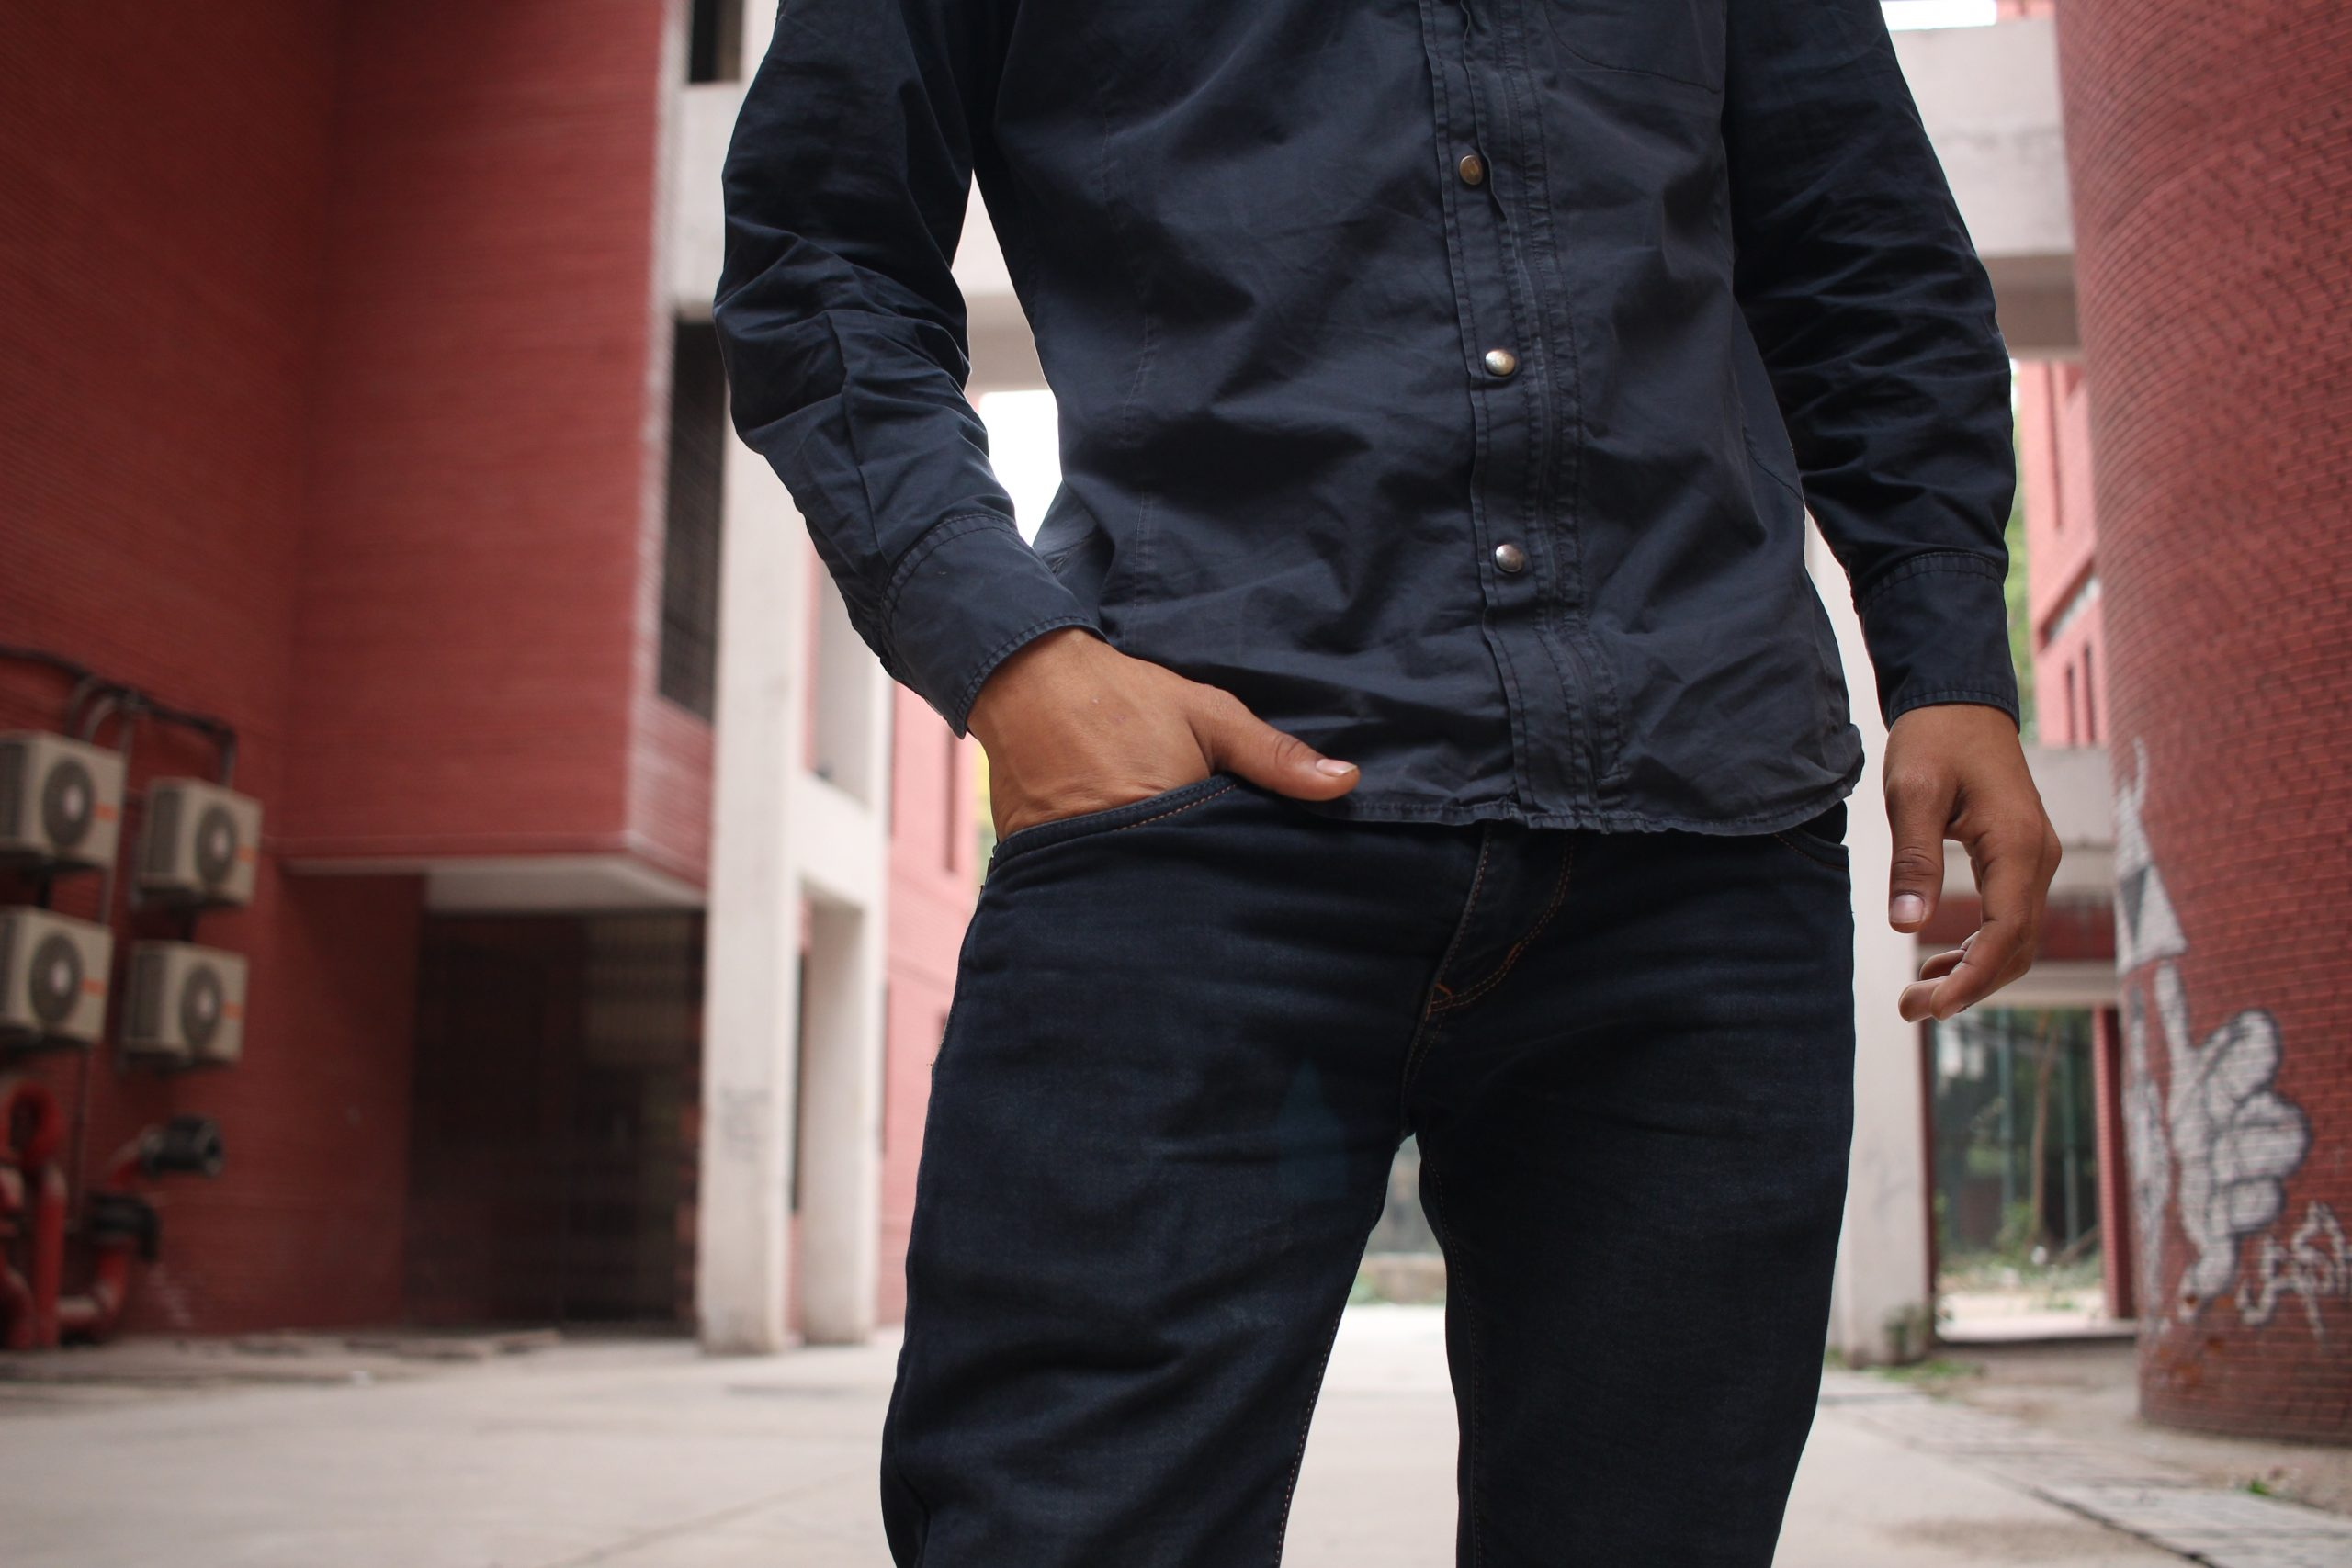 torso shot of a man wearing a dark long-sleeved buttoned shirt and dark jeans, smart casual attire